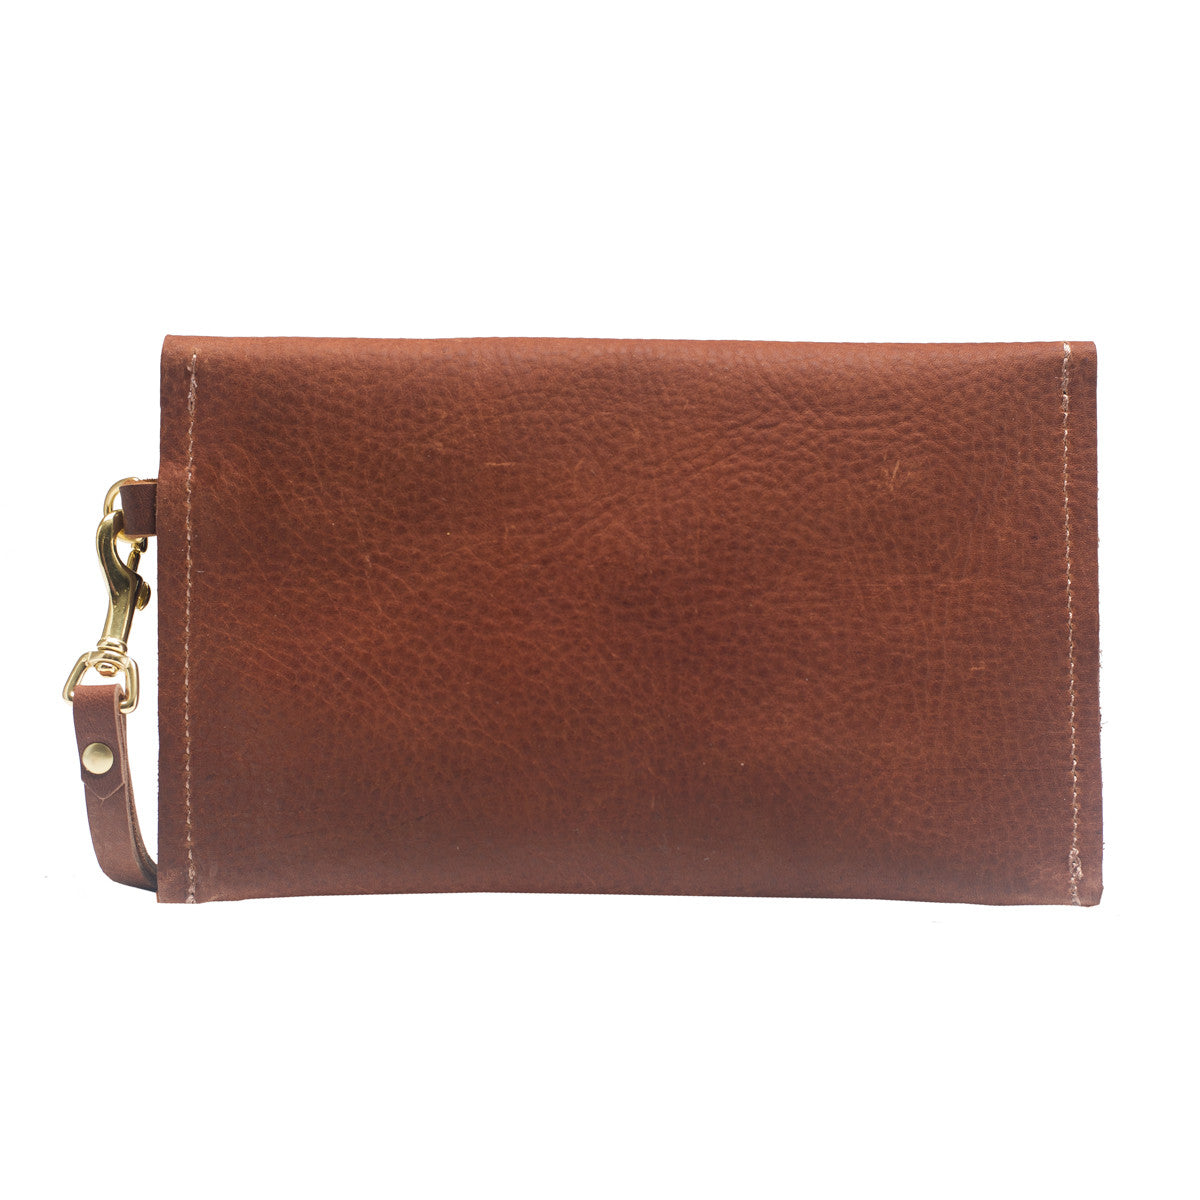 Copper Leather Clutch Clutch Wristlet, Rosa Clutch